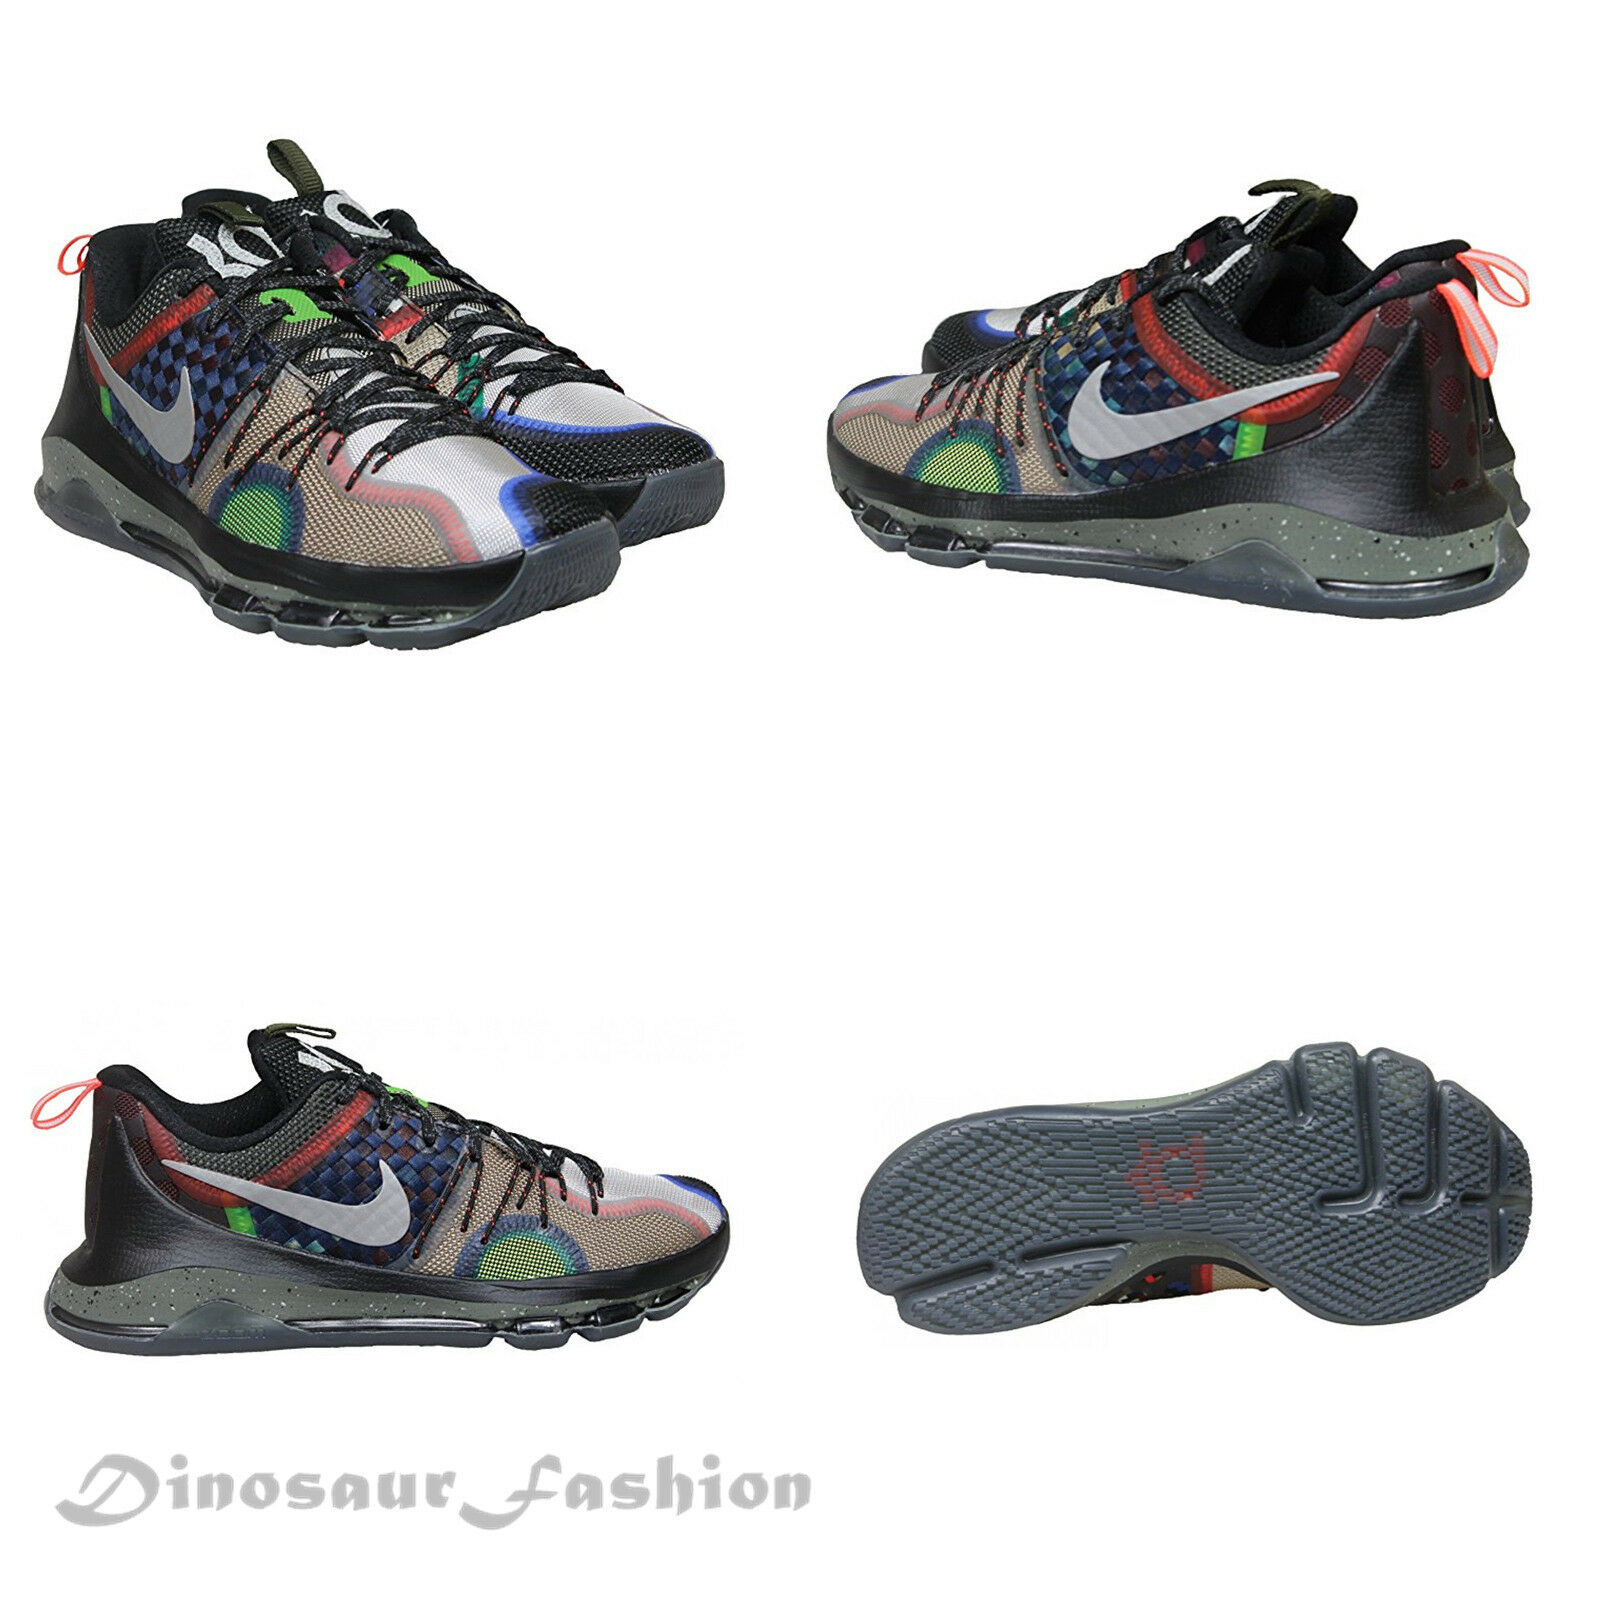 Nike Men's HD 8 SE Price reduction KEVIN DURANT,Basketball Shoes,New with box New shoes for men and women, limited time discount Comfortable and good-looking